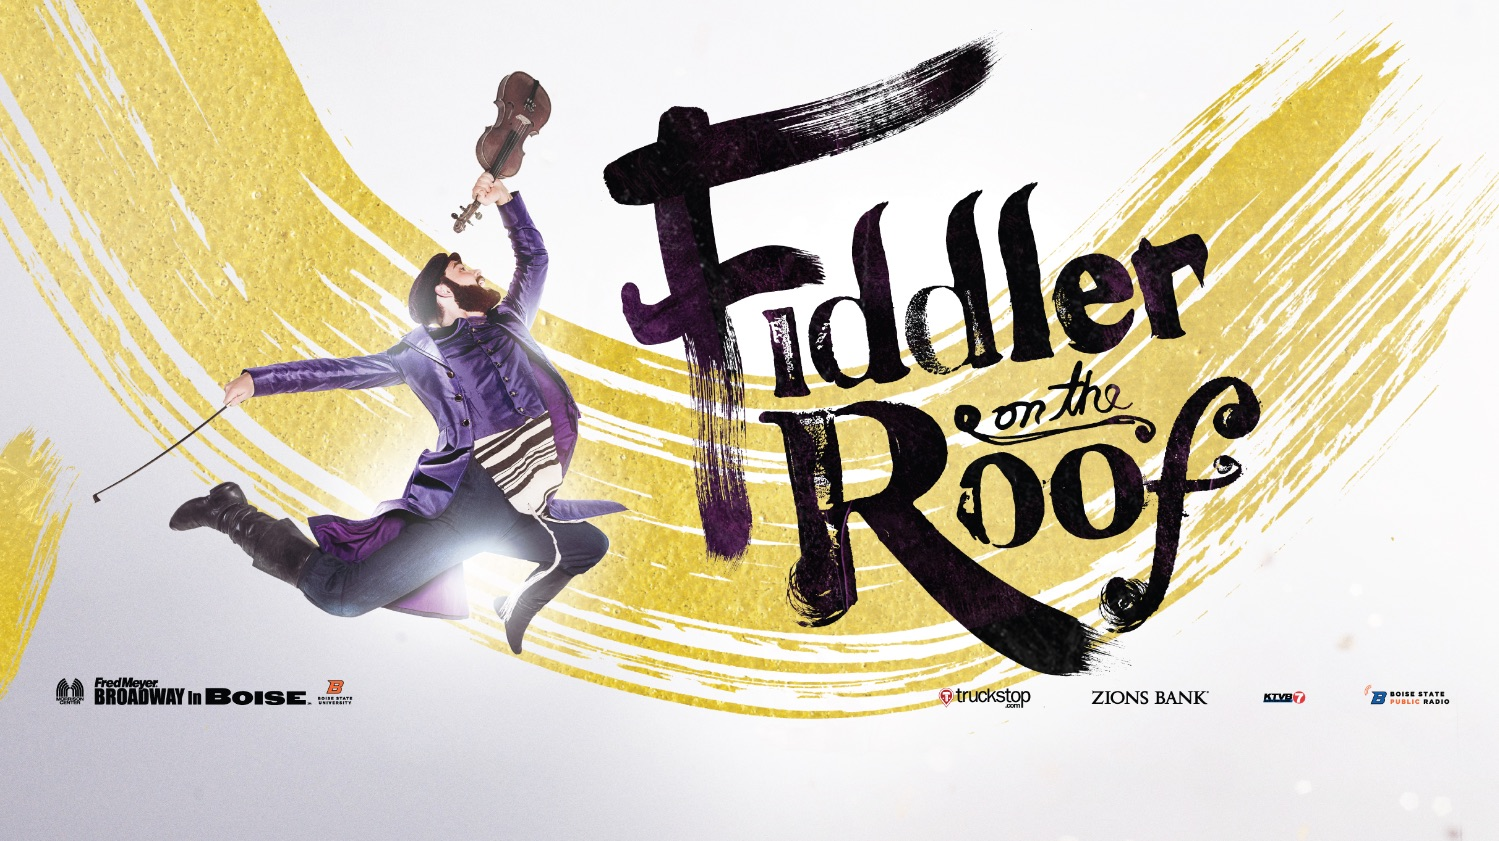 Fiddler On The Roof graphic